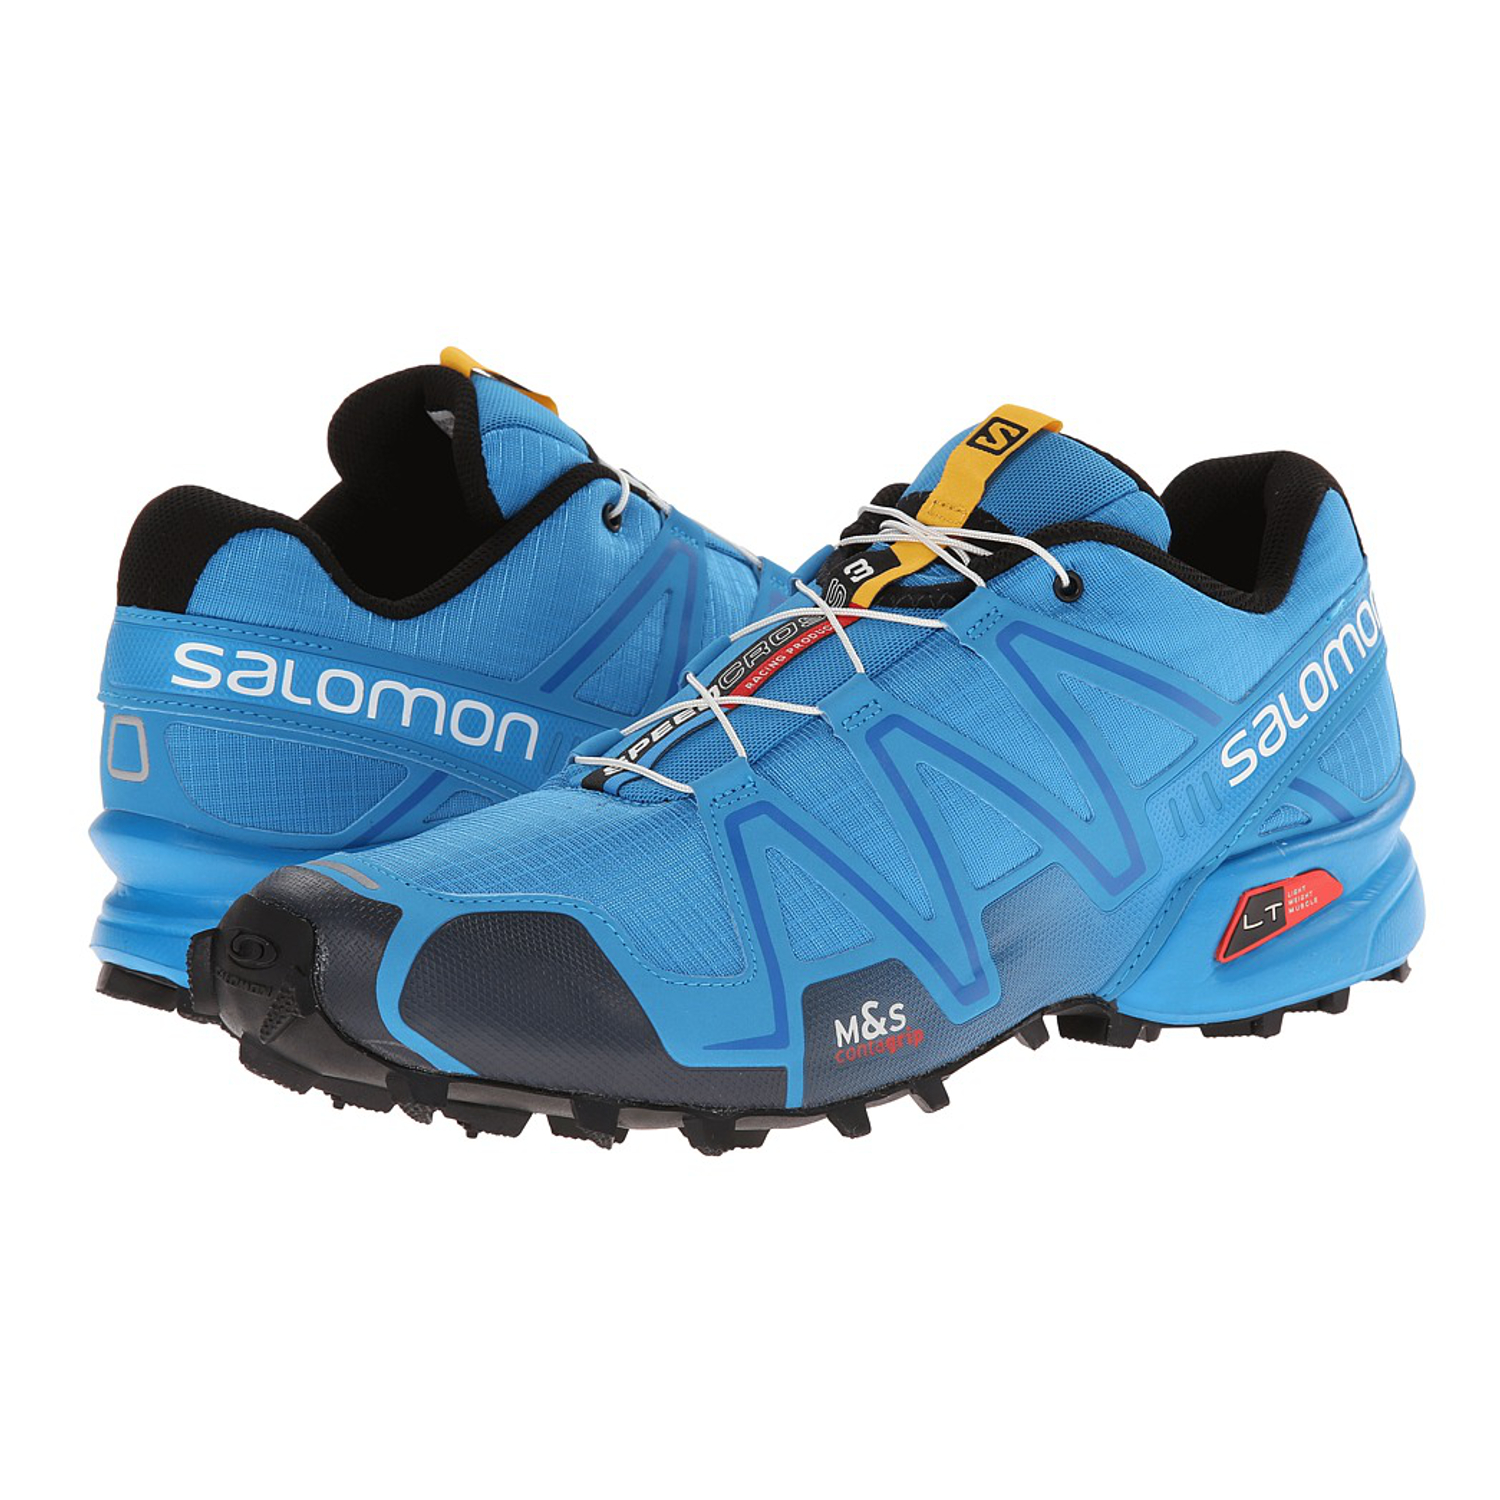 100 authentic salomon speedcross 3 mens running shoes methyl blue deep blue ebay. Black Bedroom Furniture Sets. Home Design Ideas